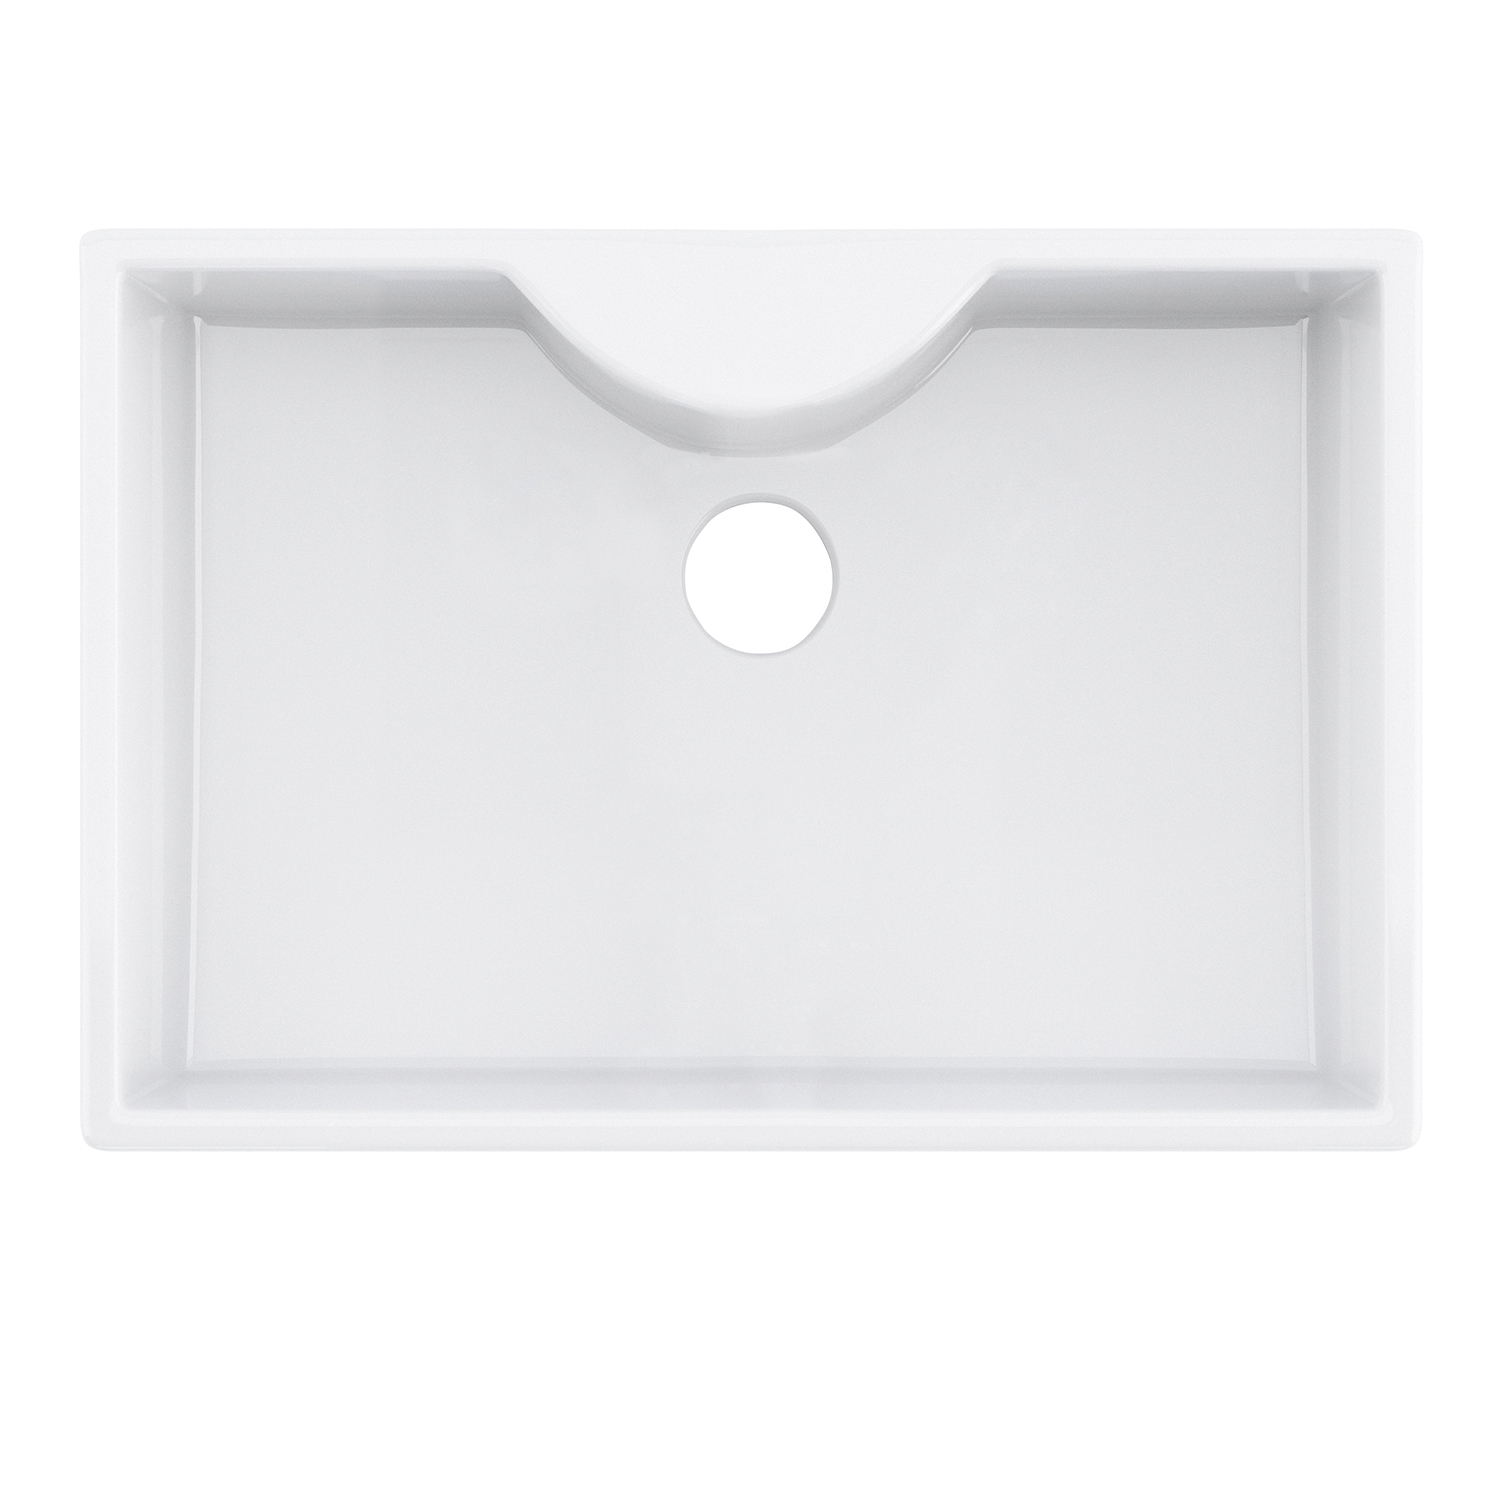 Premier Staffordshire Ceramic Kitchen Sink 1.0 Bowl 595mm L x 450mm W - White